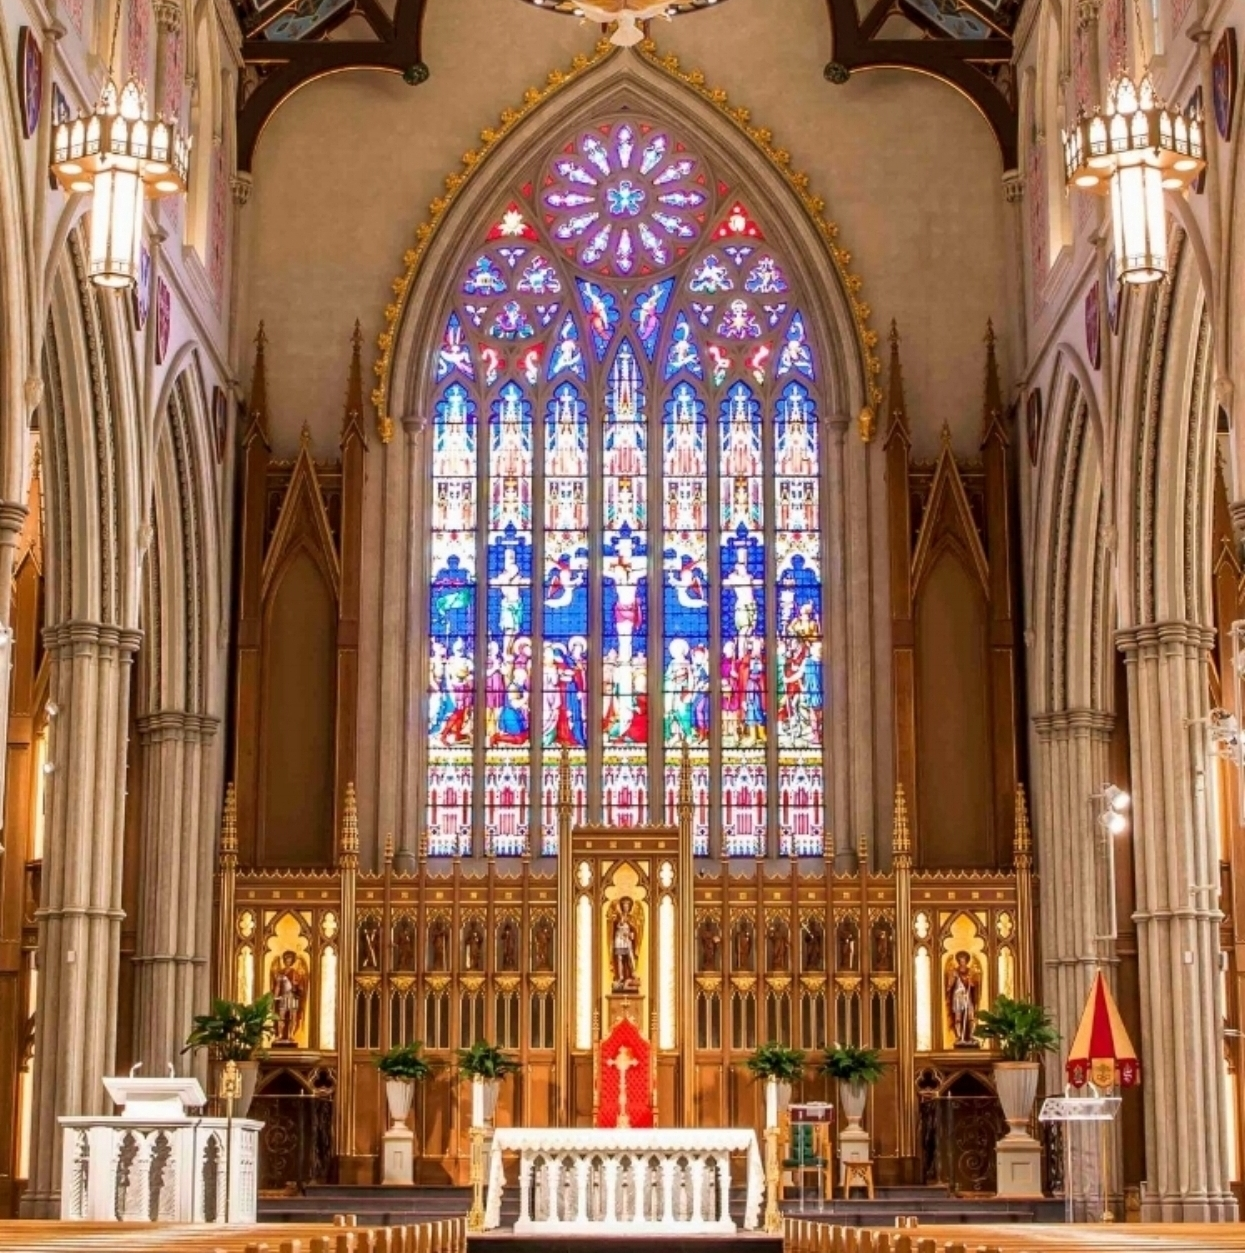 St. Michael's Cathedral Chancel Organ Speakers are in custom-built cabinets on each side of the beautiful stained glass sanctuary window